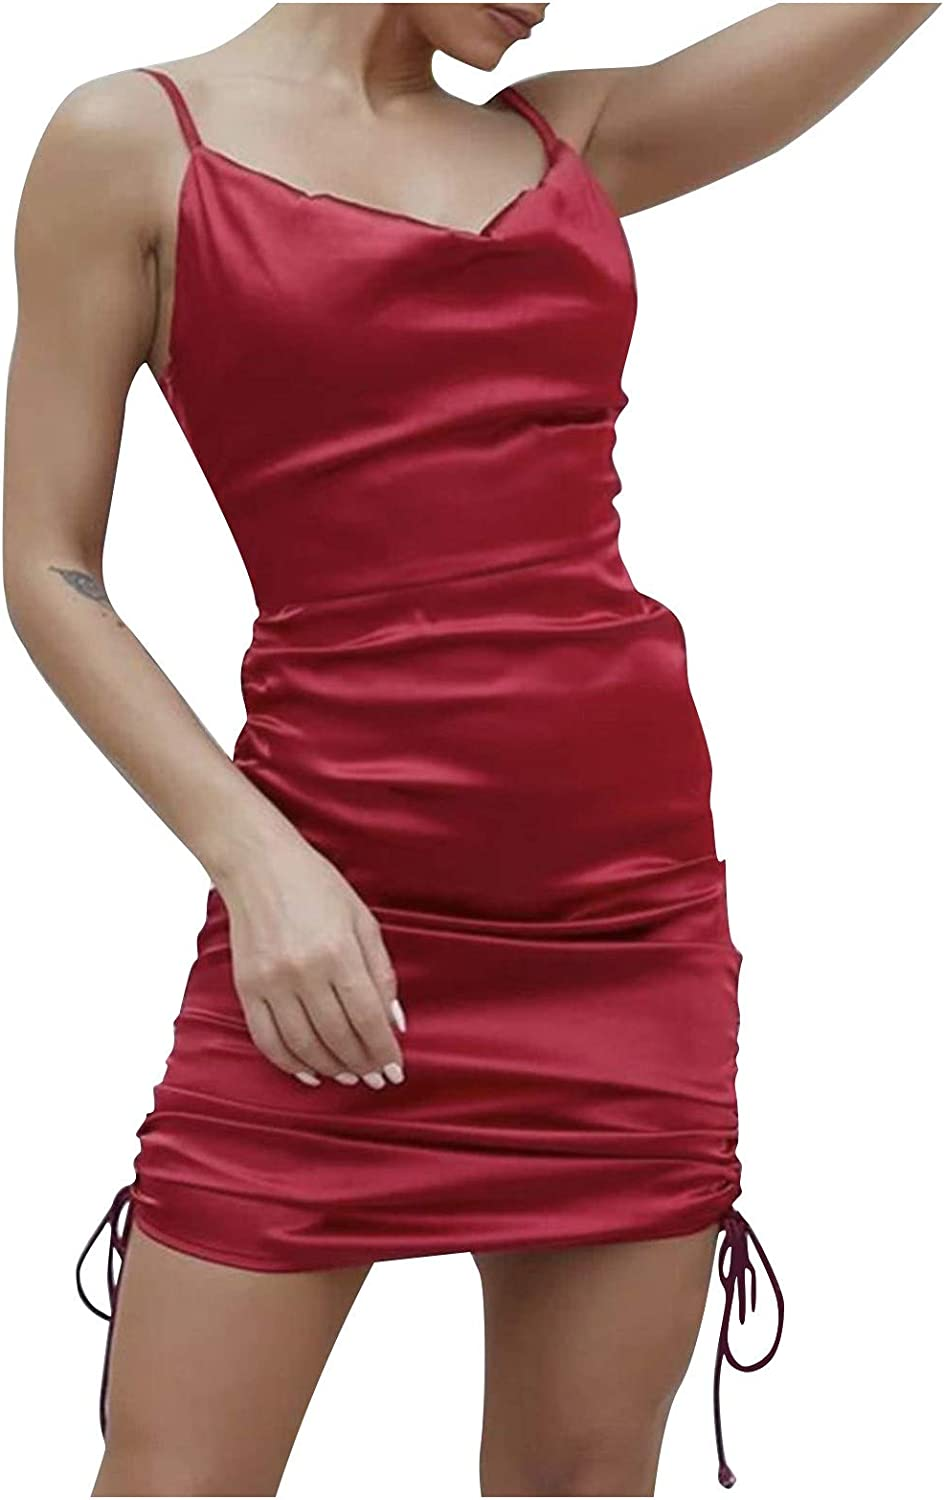 Women's Fashion Sexy Drawstring Solid Color Sleeveless Tight Fit Buttocks Dress